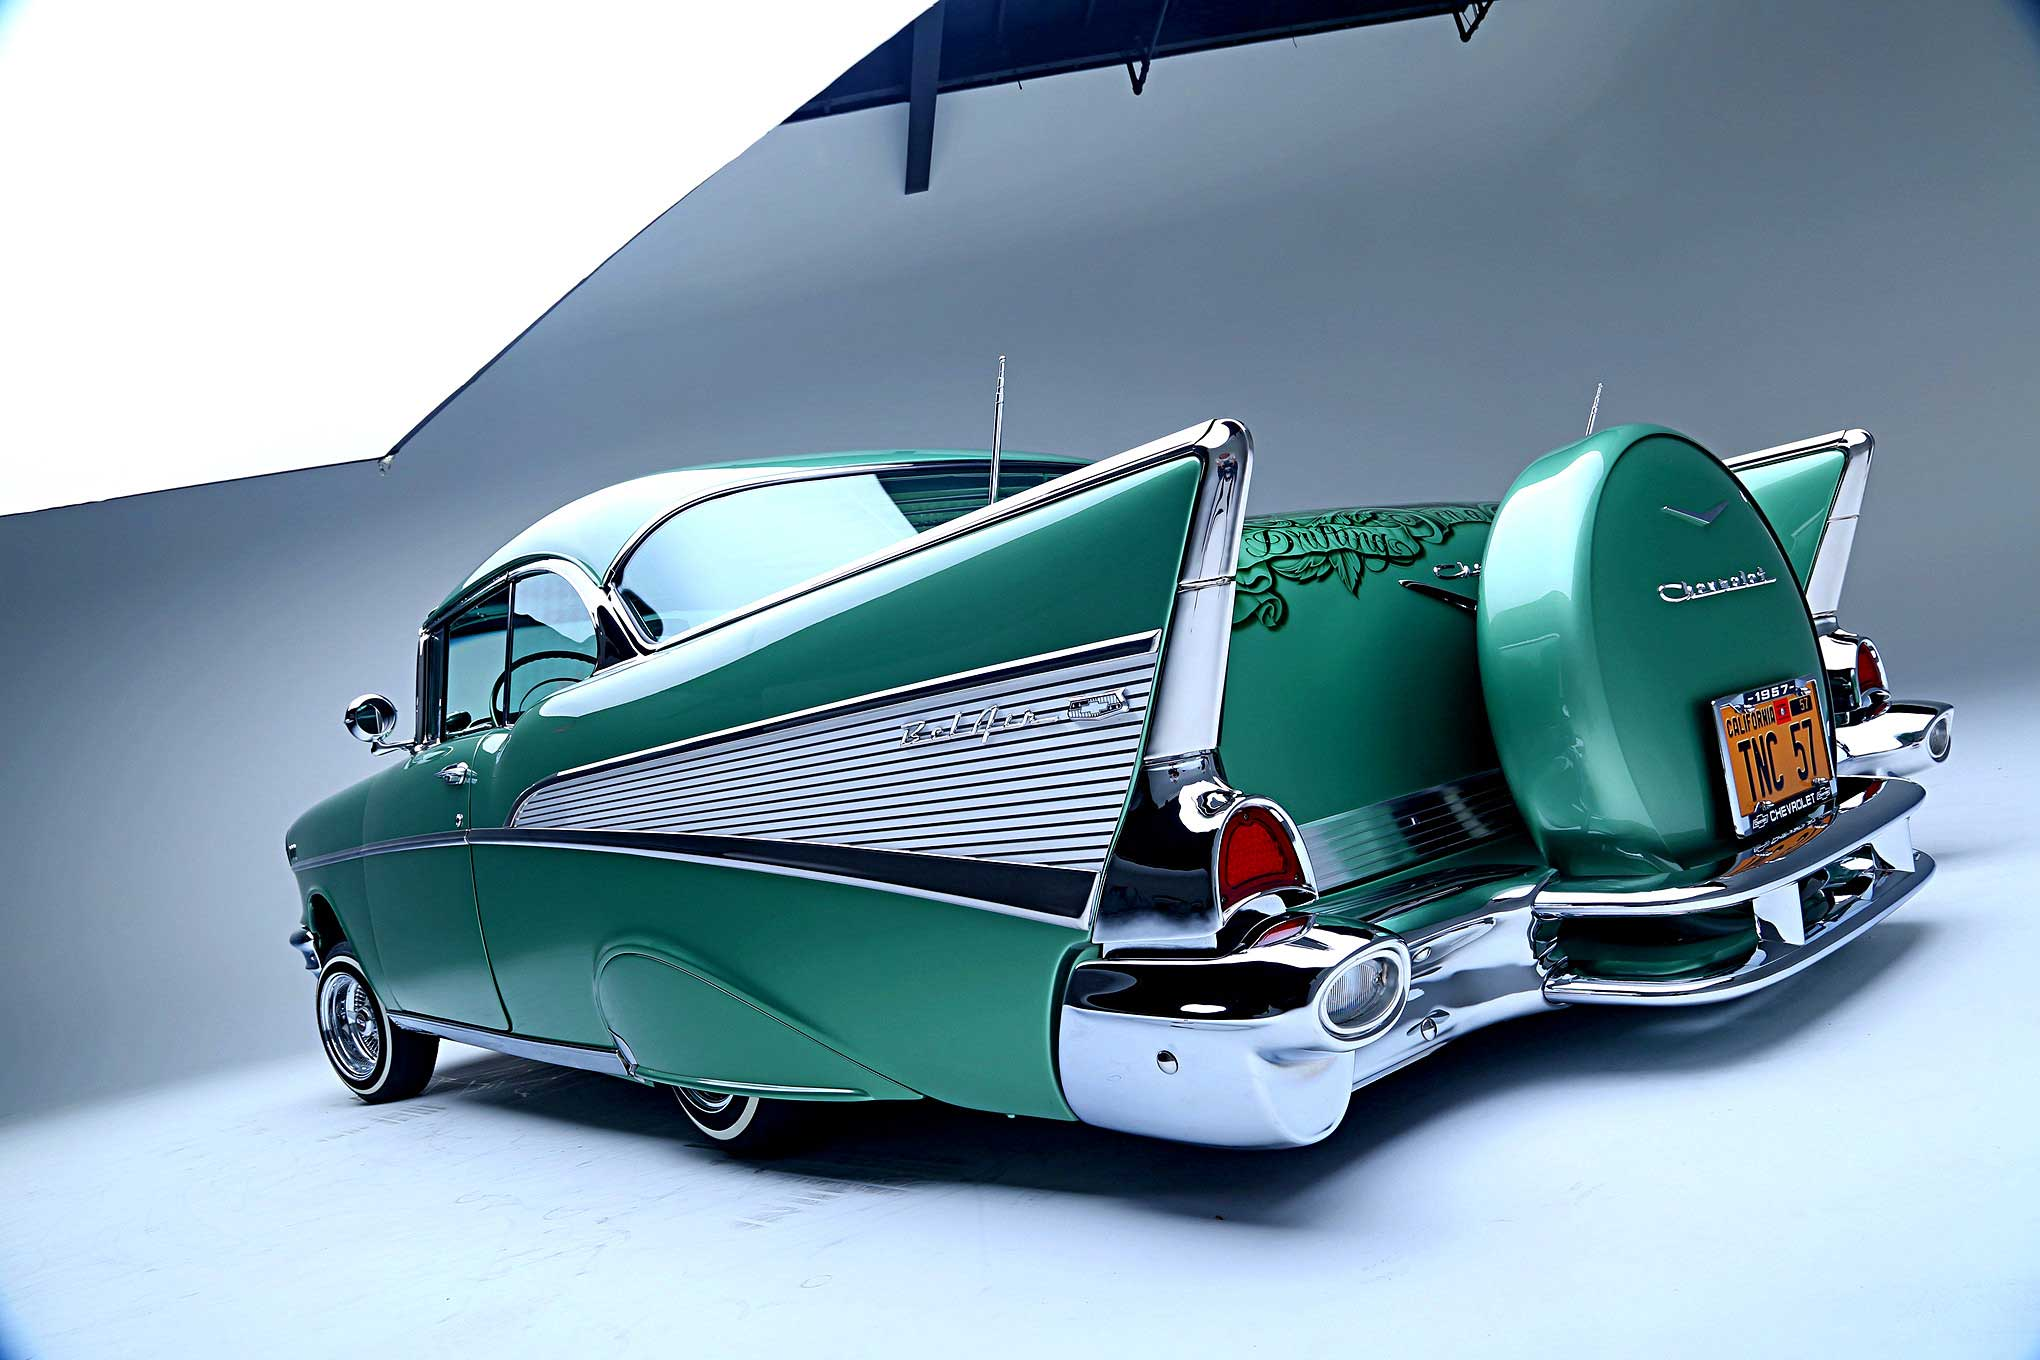 1957 Chevrolet Bel Air Tail Fin Lowrider Chevy Impala About This Editor